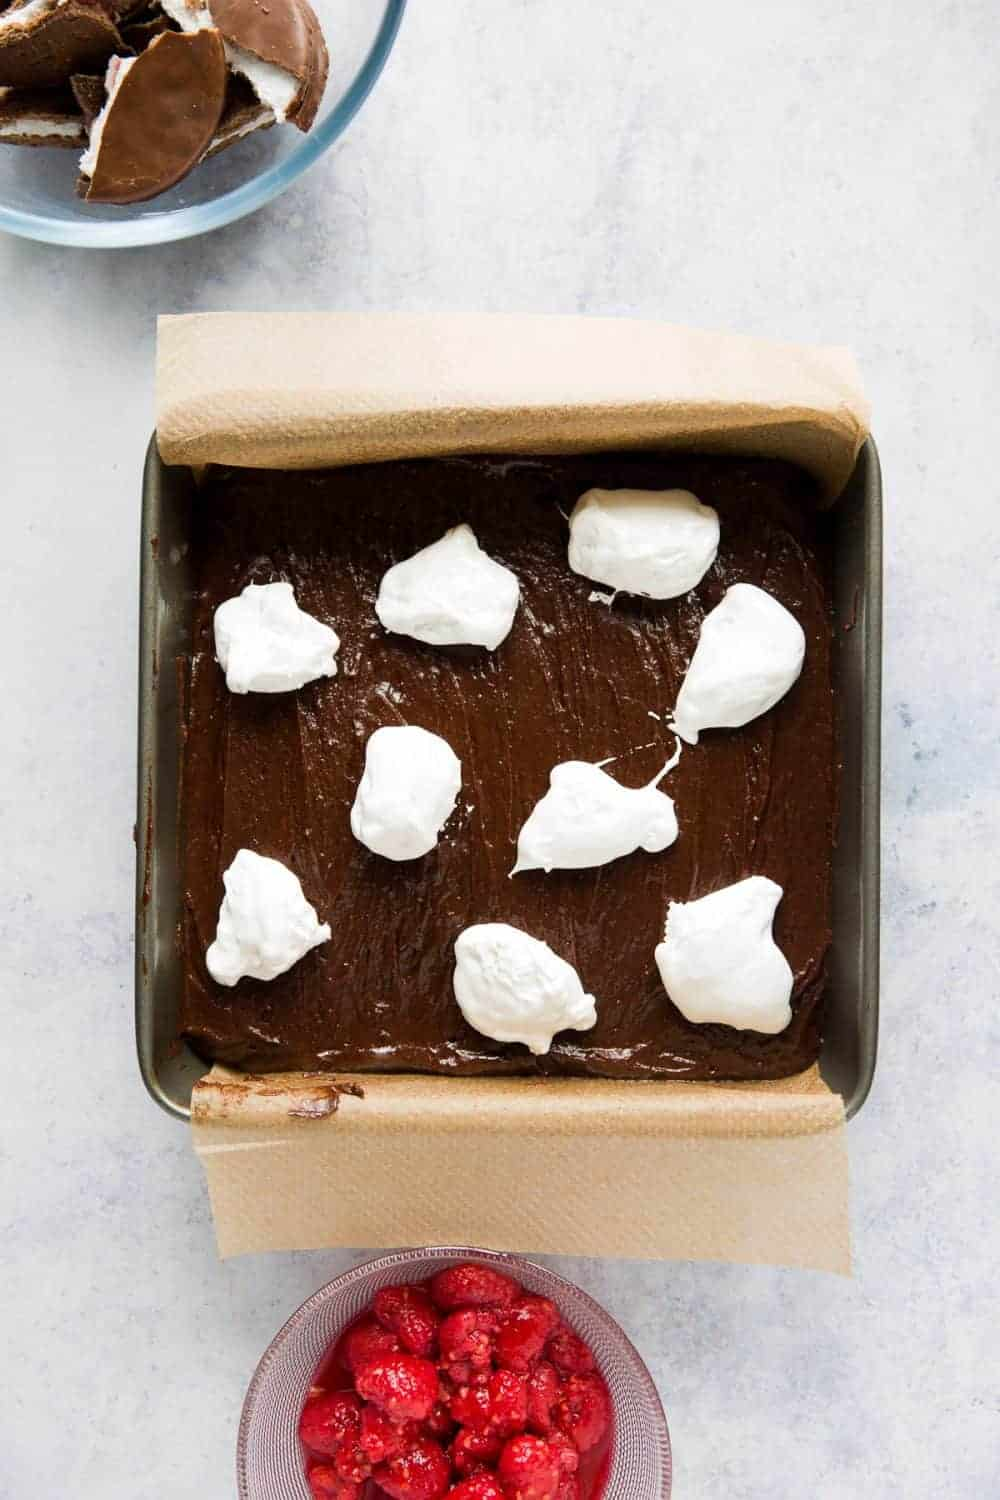 Brownie batter with marshmallow fluff spooned over the top.